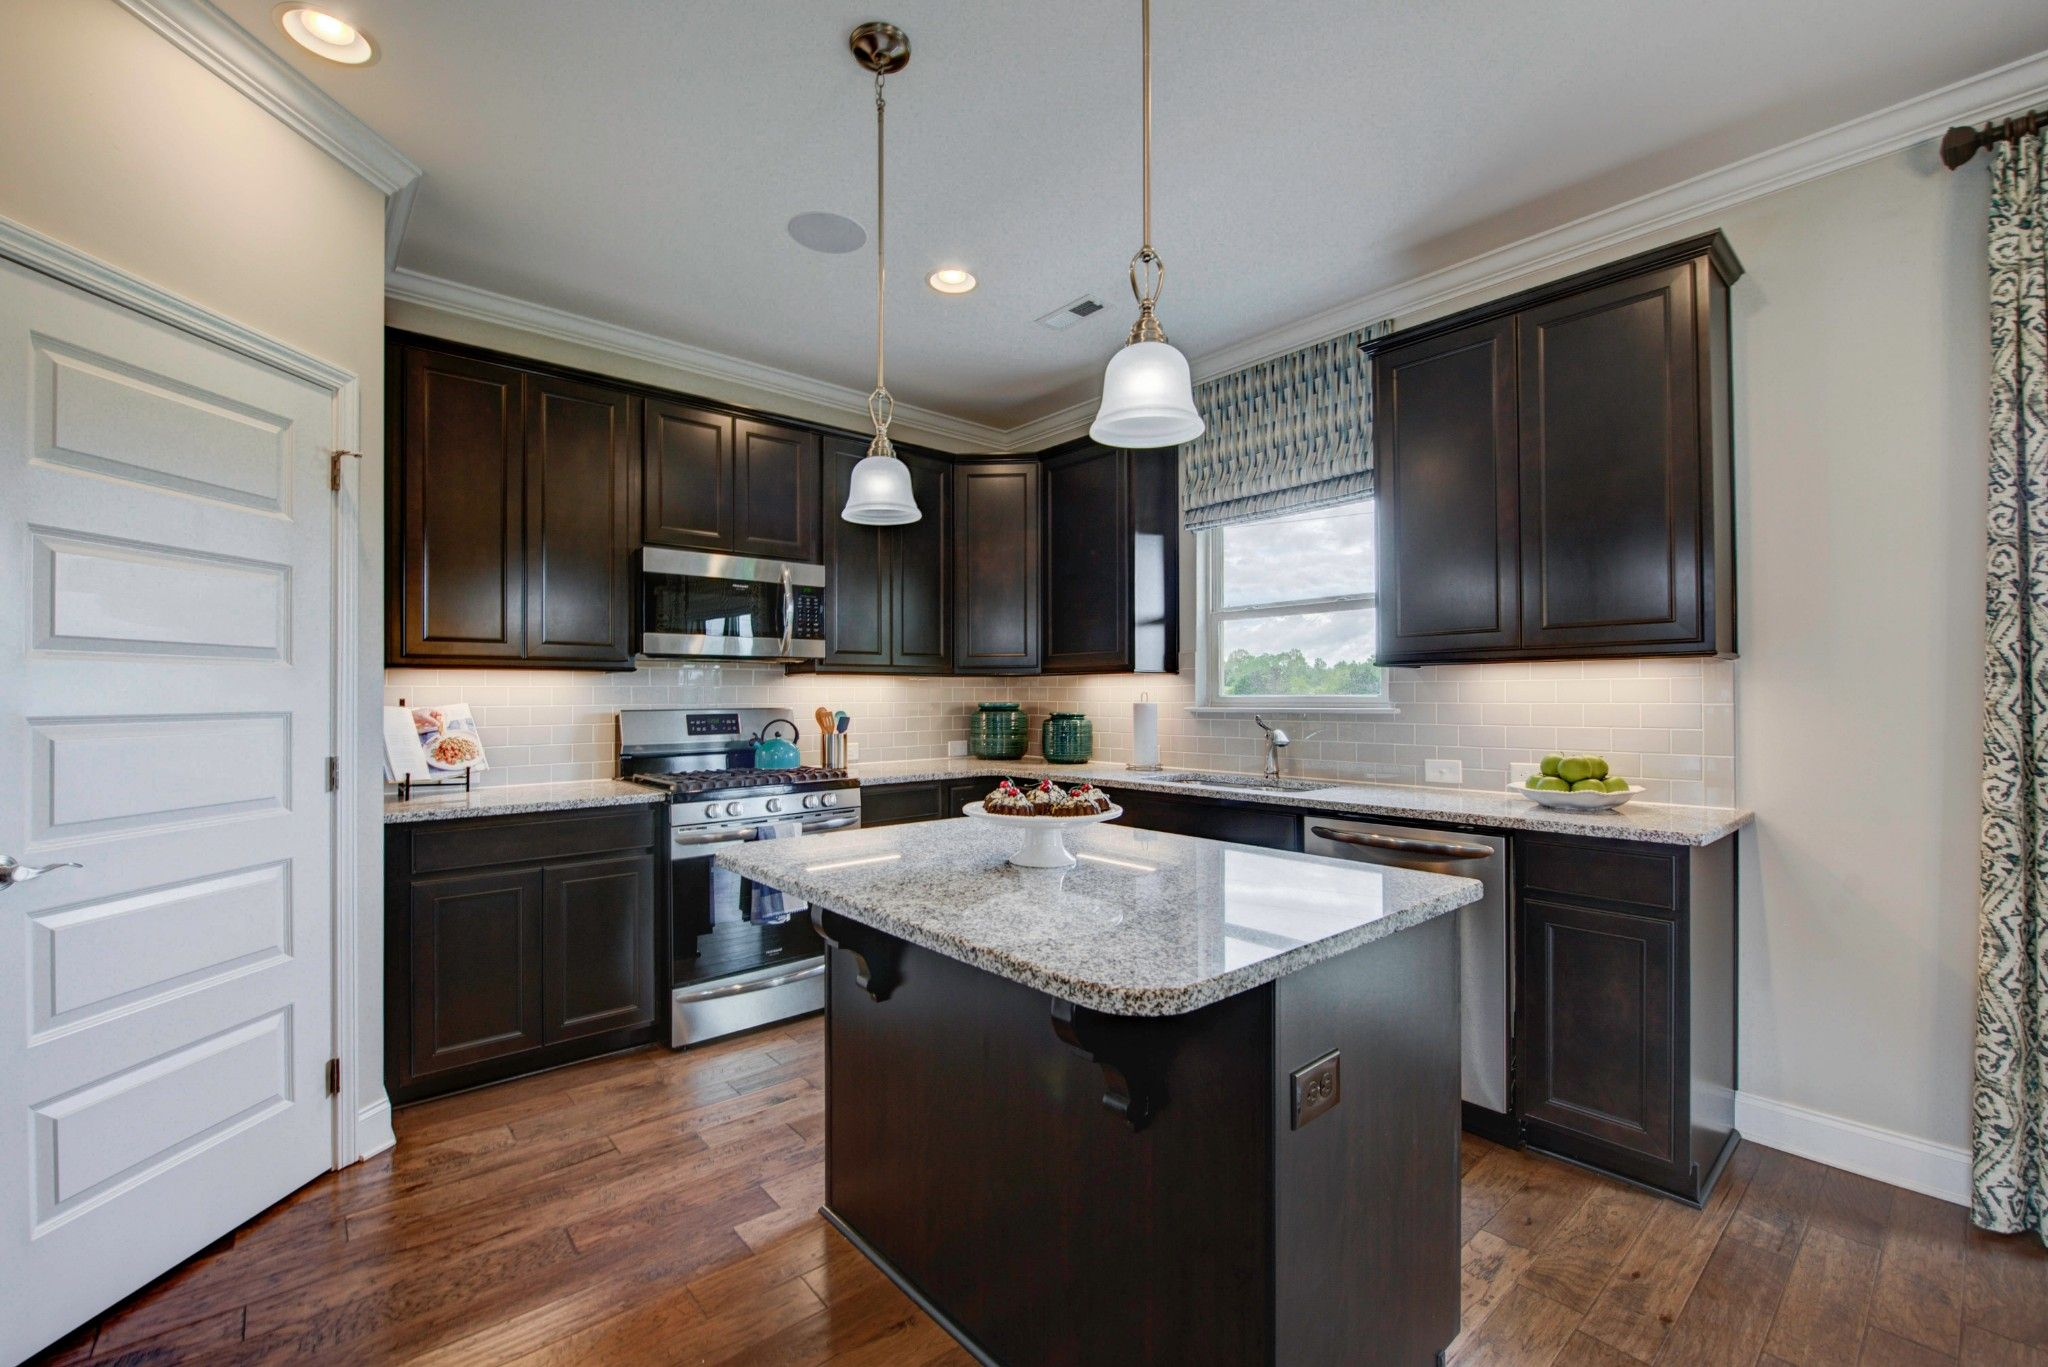 Kitchen featured in The Eliot By Goodall Homes in Knoxville, TN